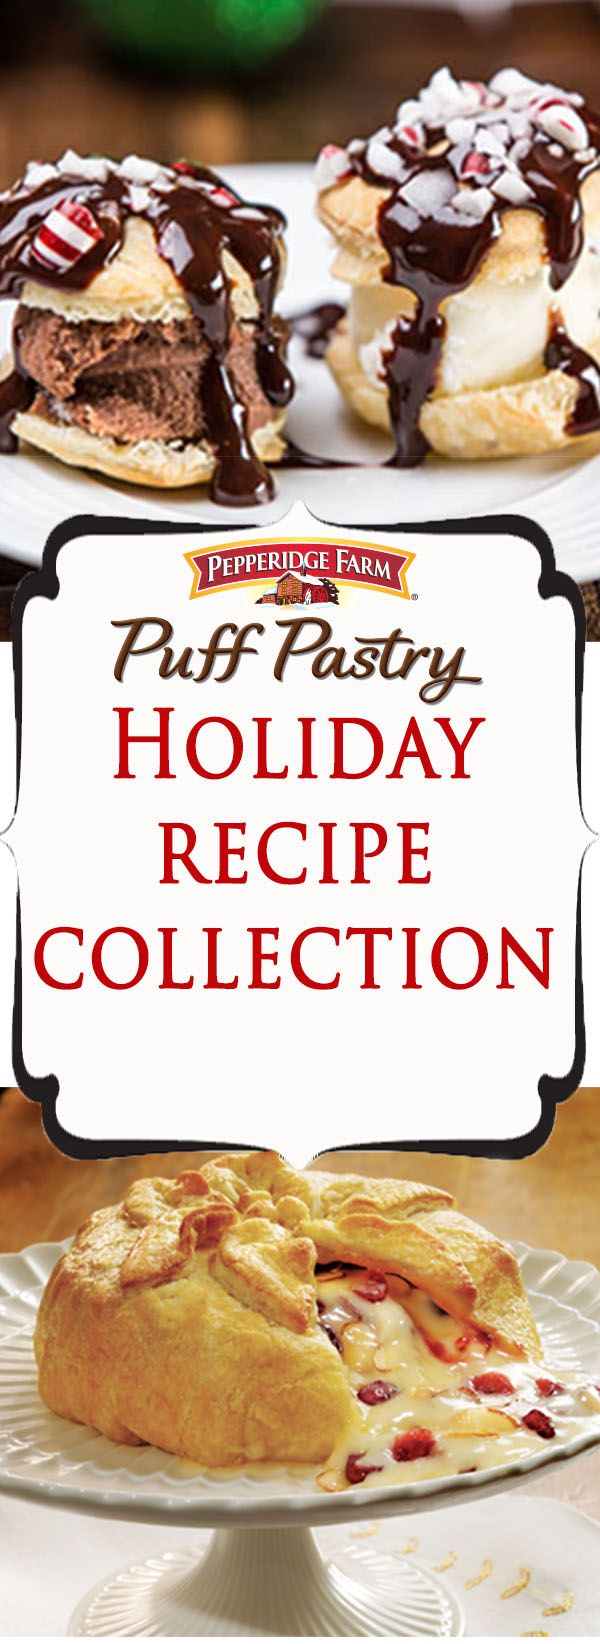 Pepperidge Farm Puff Pastry Holiday Recipe Collection. Festive, impressive recipes that make any holiday gathering or party even more special. Find all the inspiration you need with this list full of appetizers, sides and desserts. Featuring seasonal ingredients and classic dishes that will warm your kitchen and your heart.